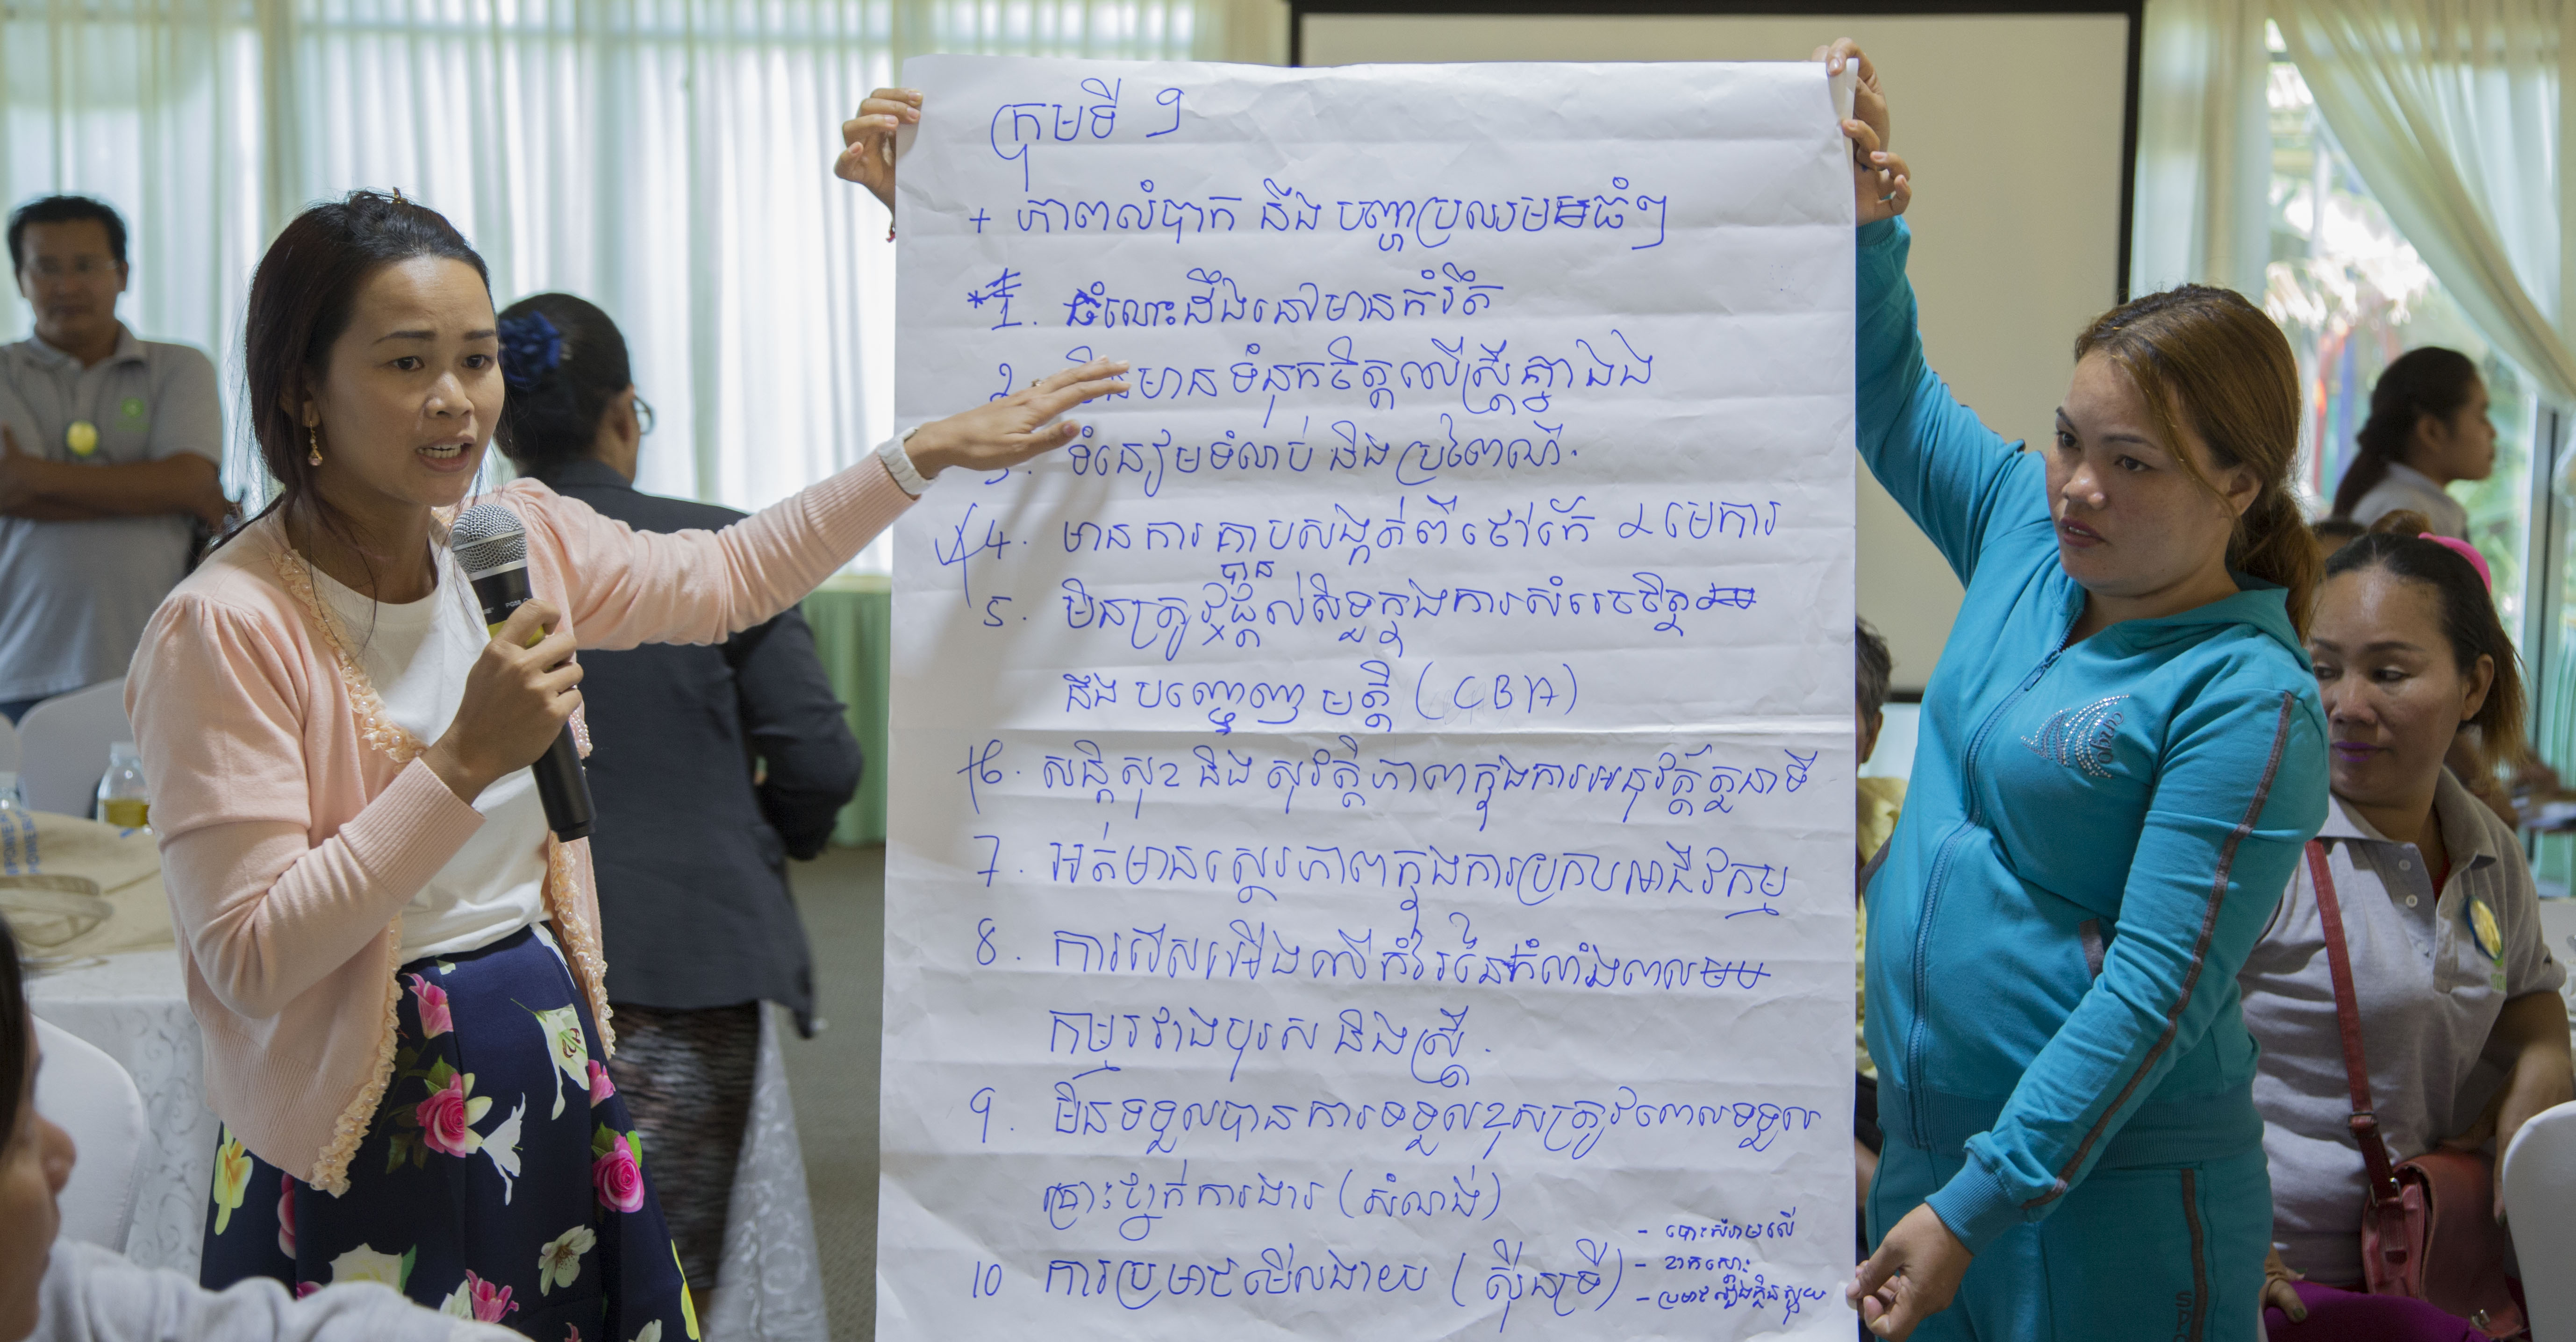 Presentation by informal worker, social protection